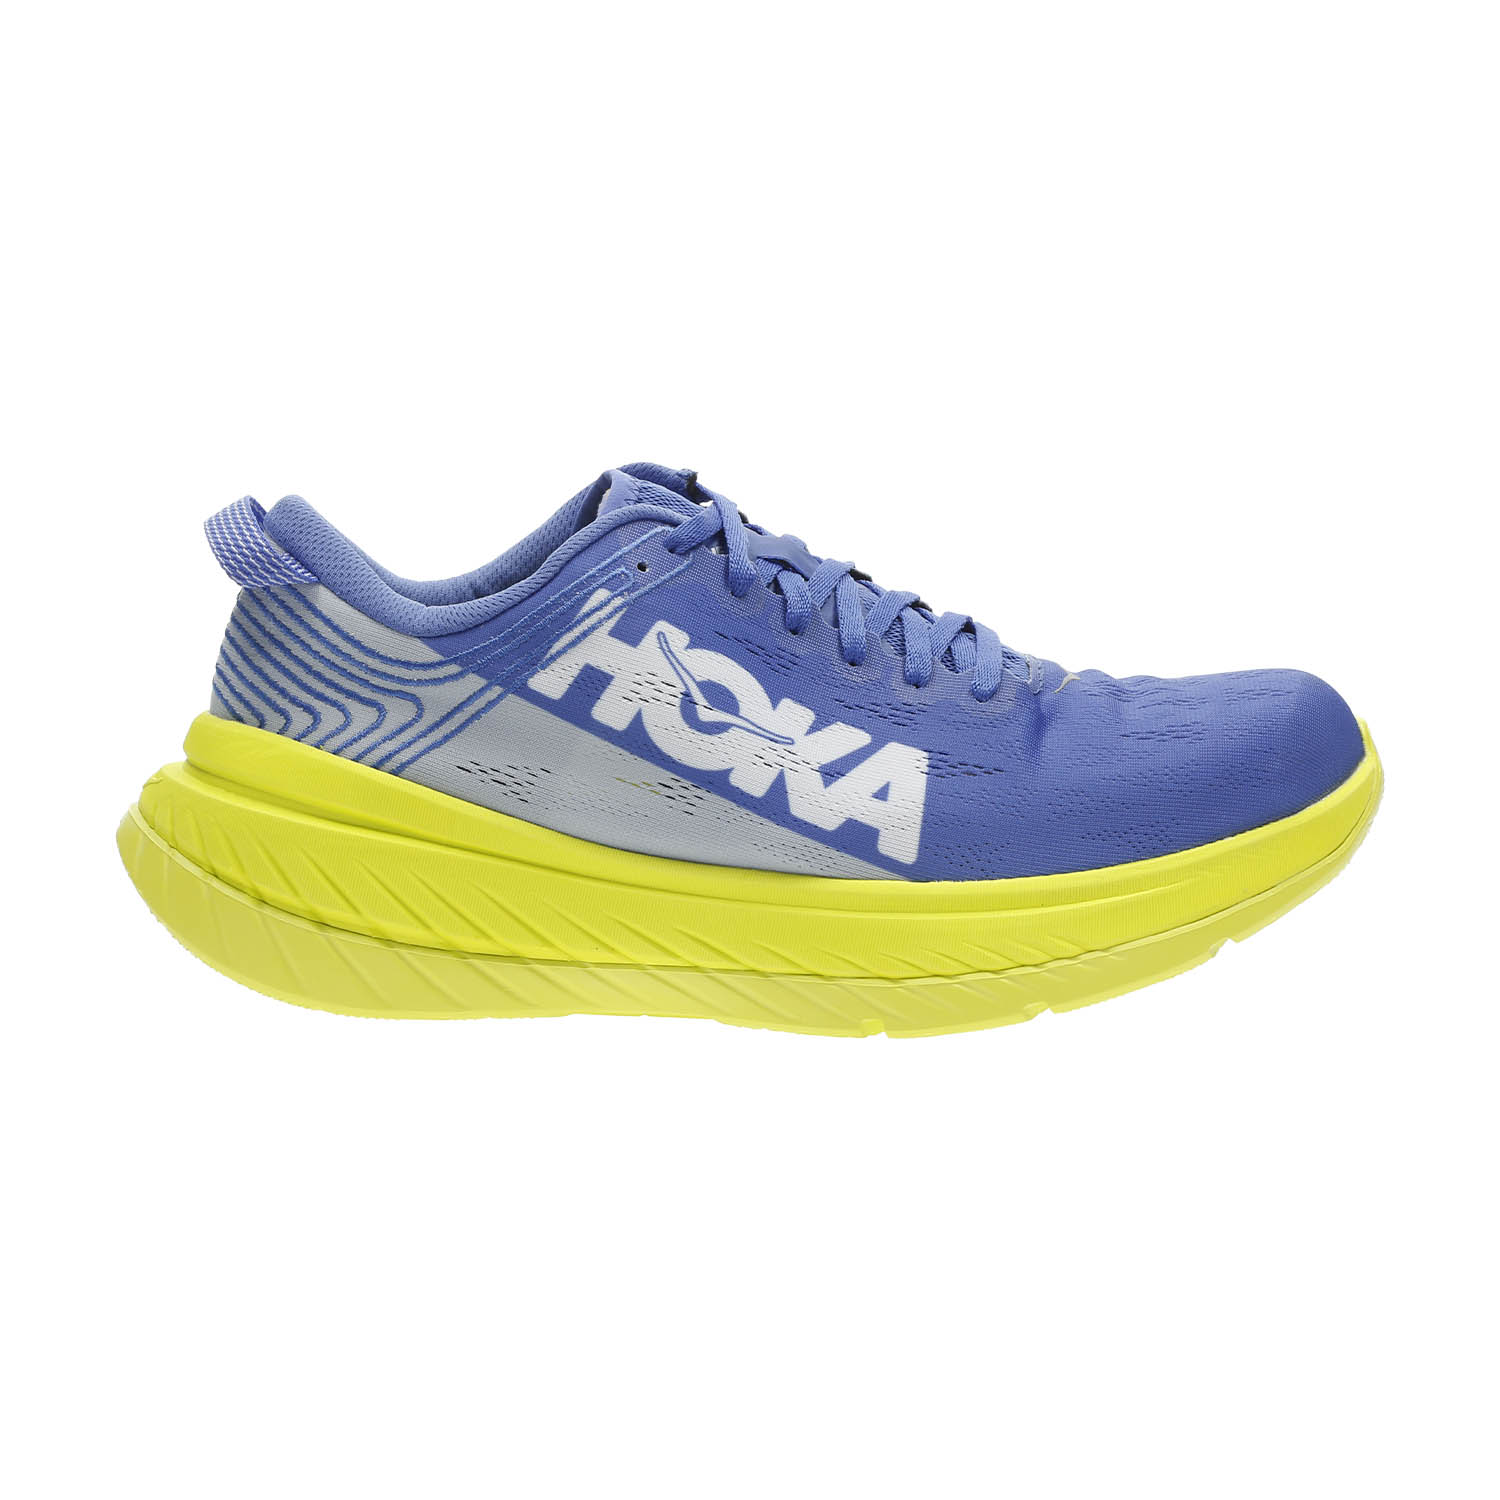 Hoka One One Carbon X - Amparo Blue/Evening Primrose